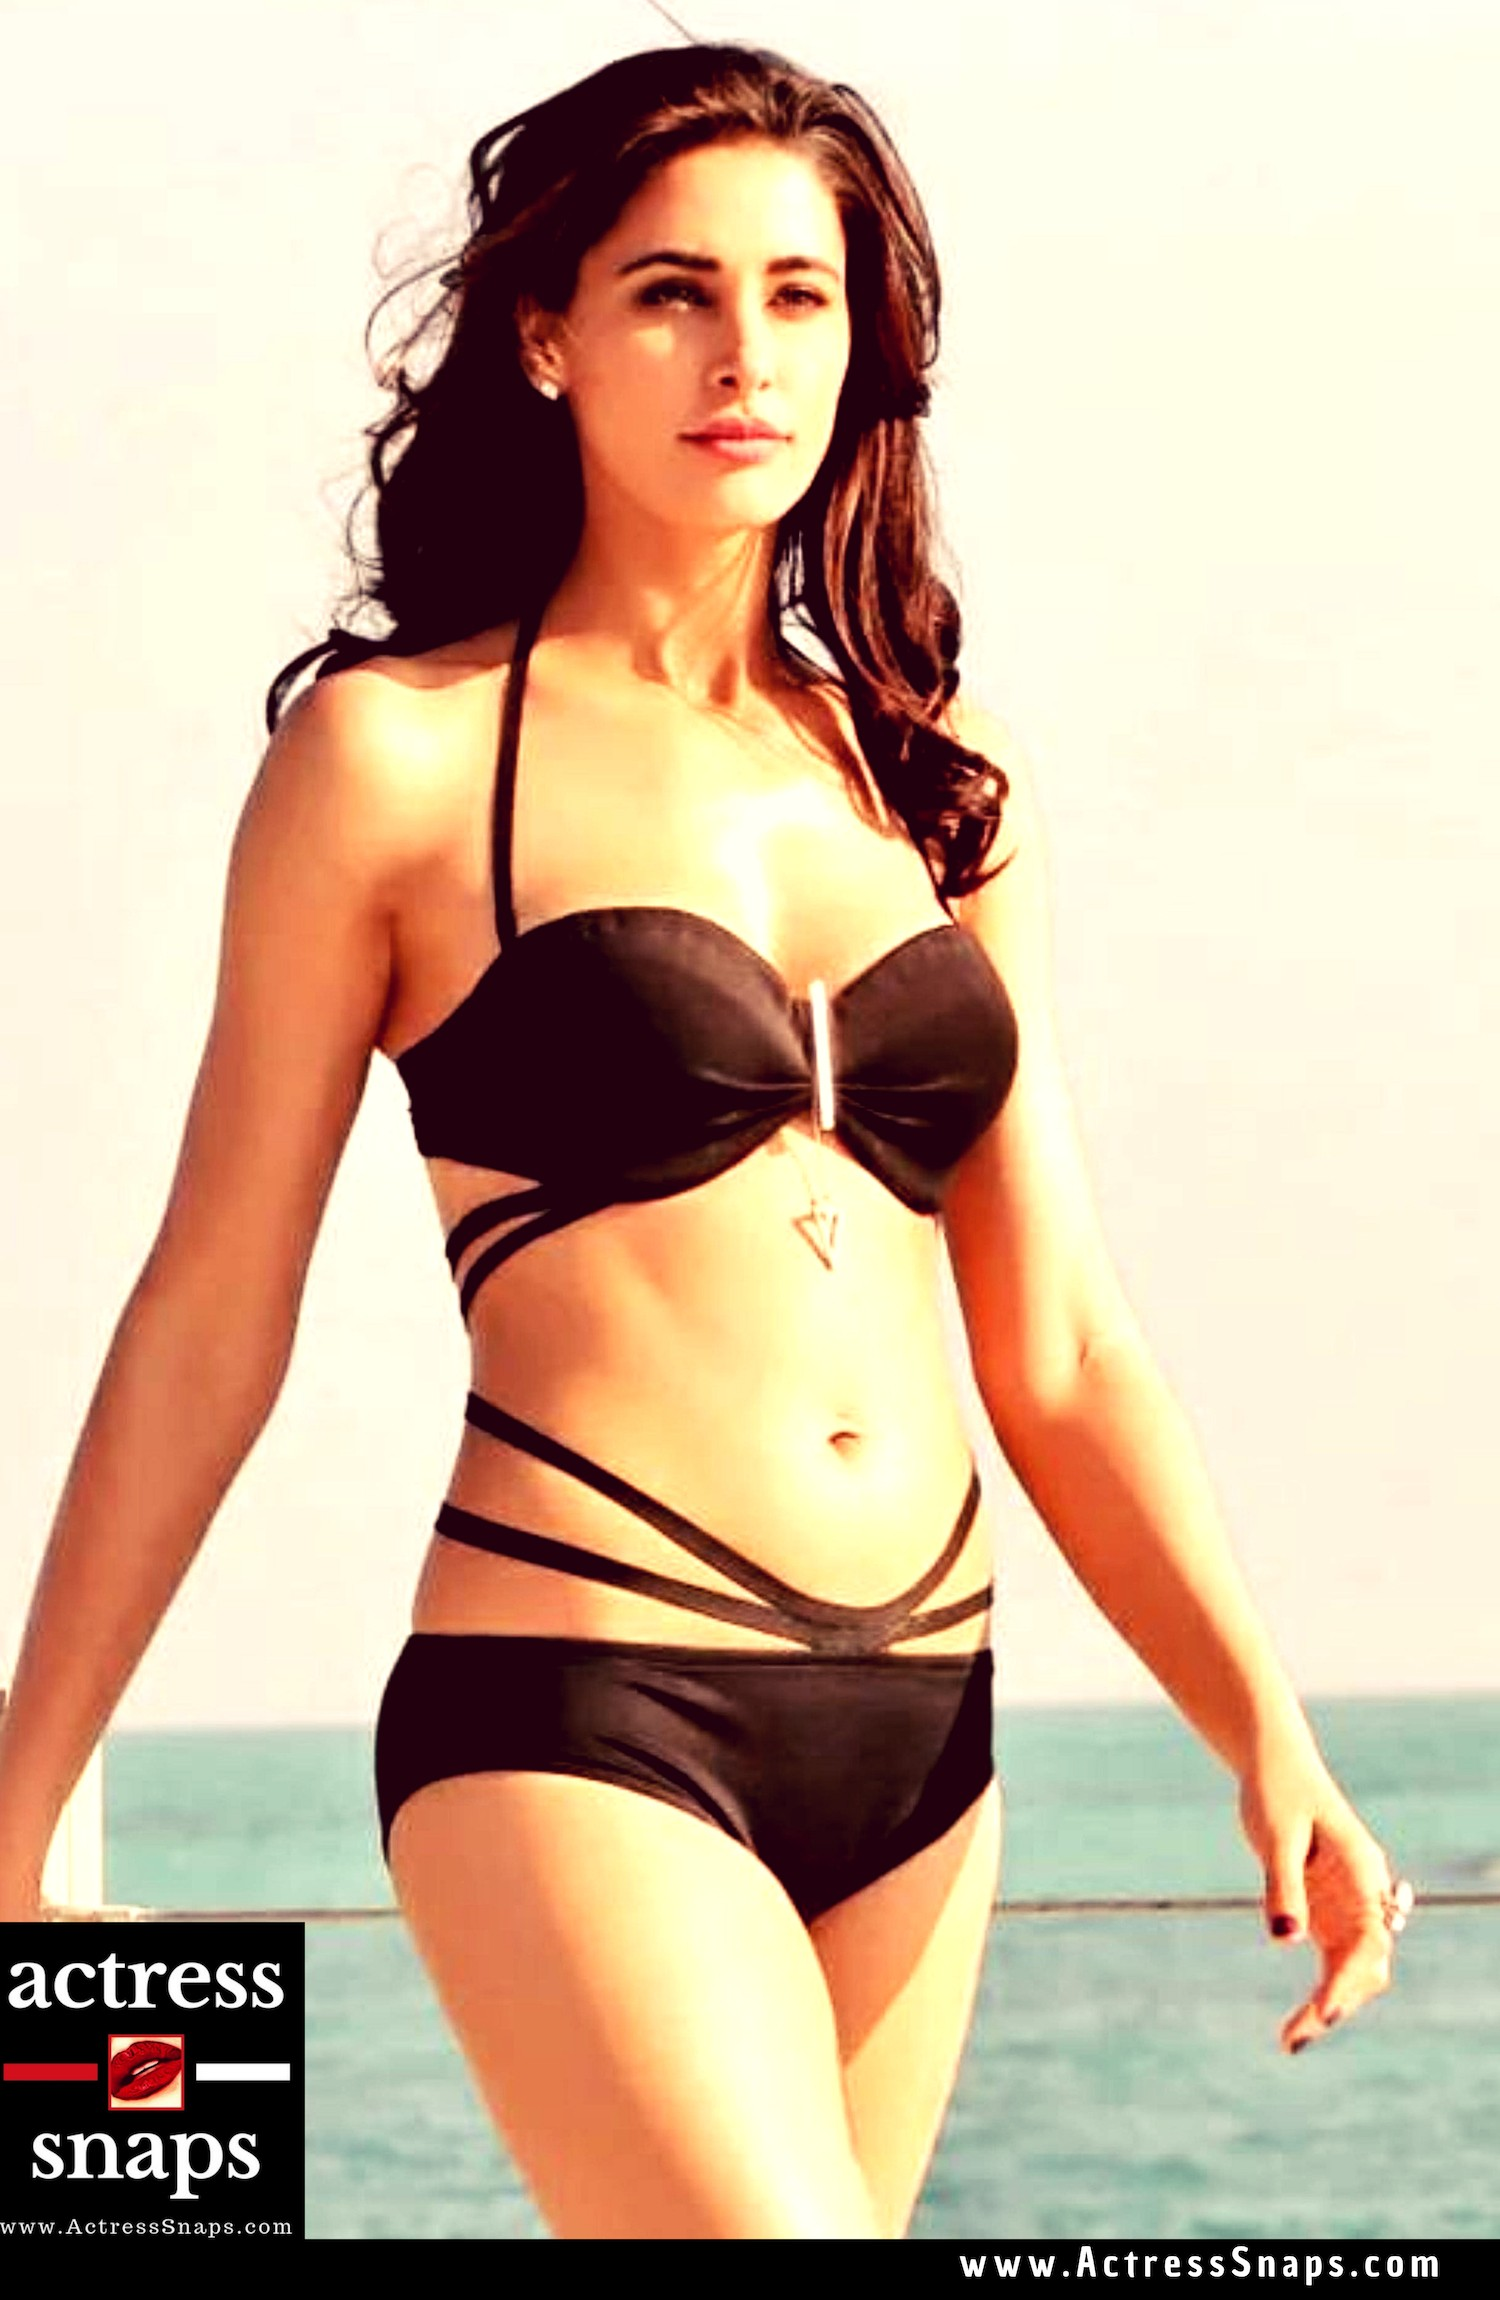 Nargis Fakhri - Sexy GIFS Collection - Sexy Actress Pictures | Hot Actress Pictures - ActressSnaps.com